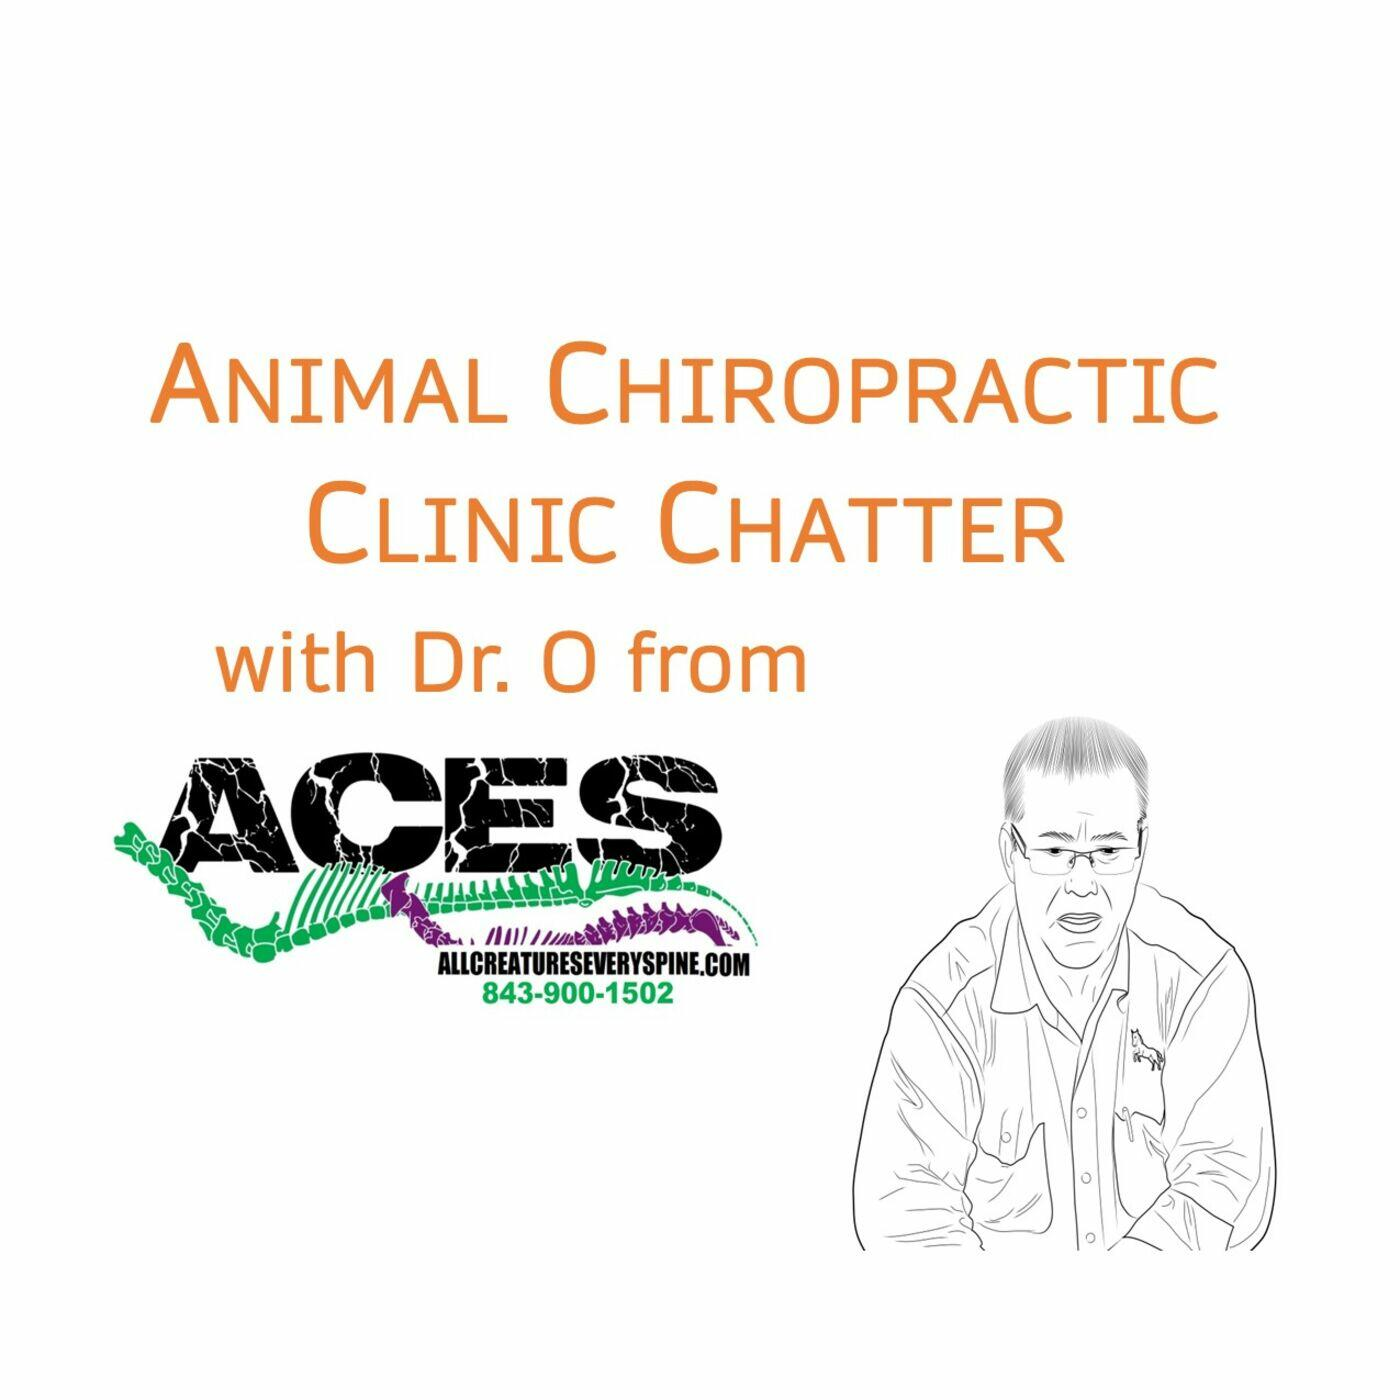 Animal Chiropractic Clinic Chatter